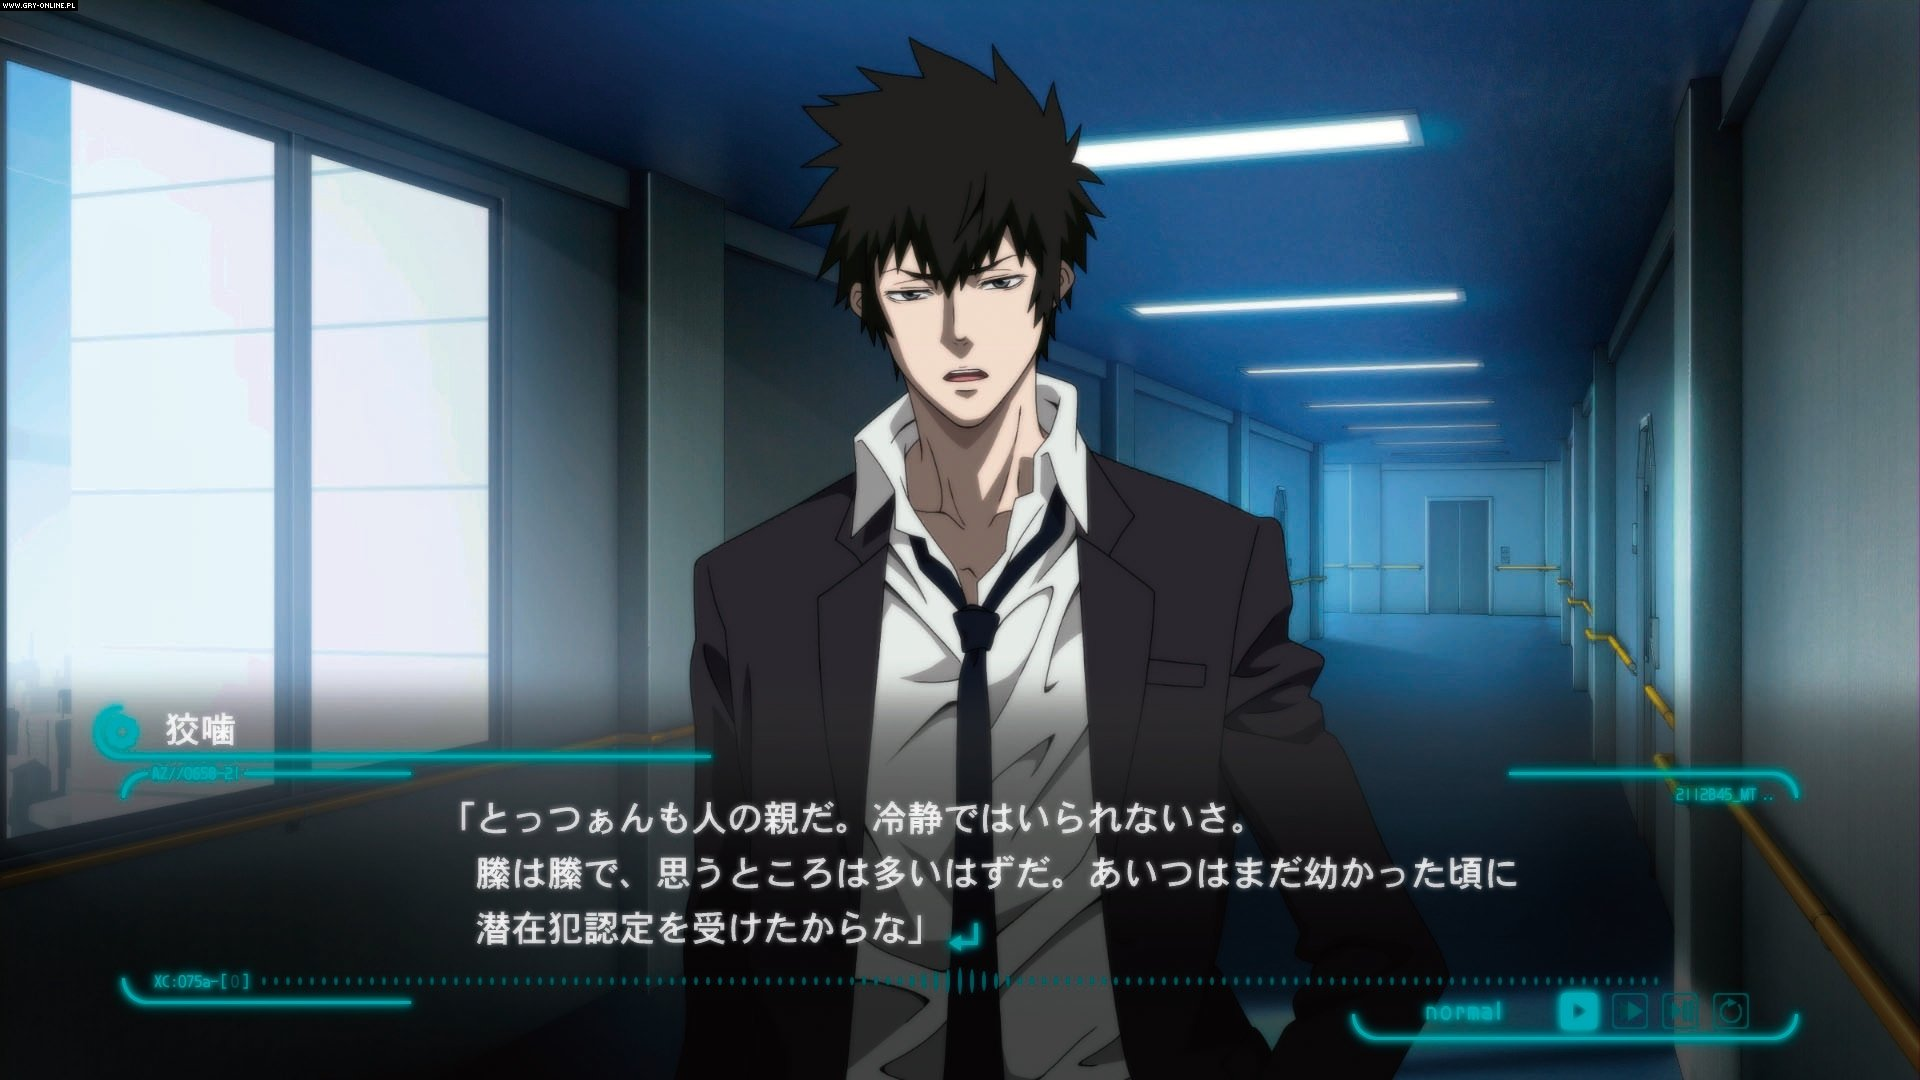 Psycho-Pass: Mandatory Happiness PC, XONE, PS4, PSV Games Image 15/15, 5pb., NIS America